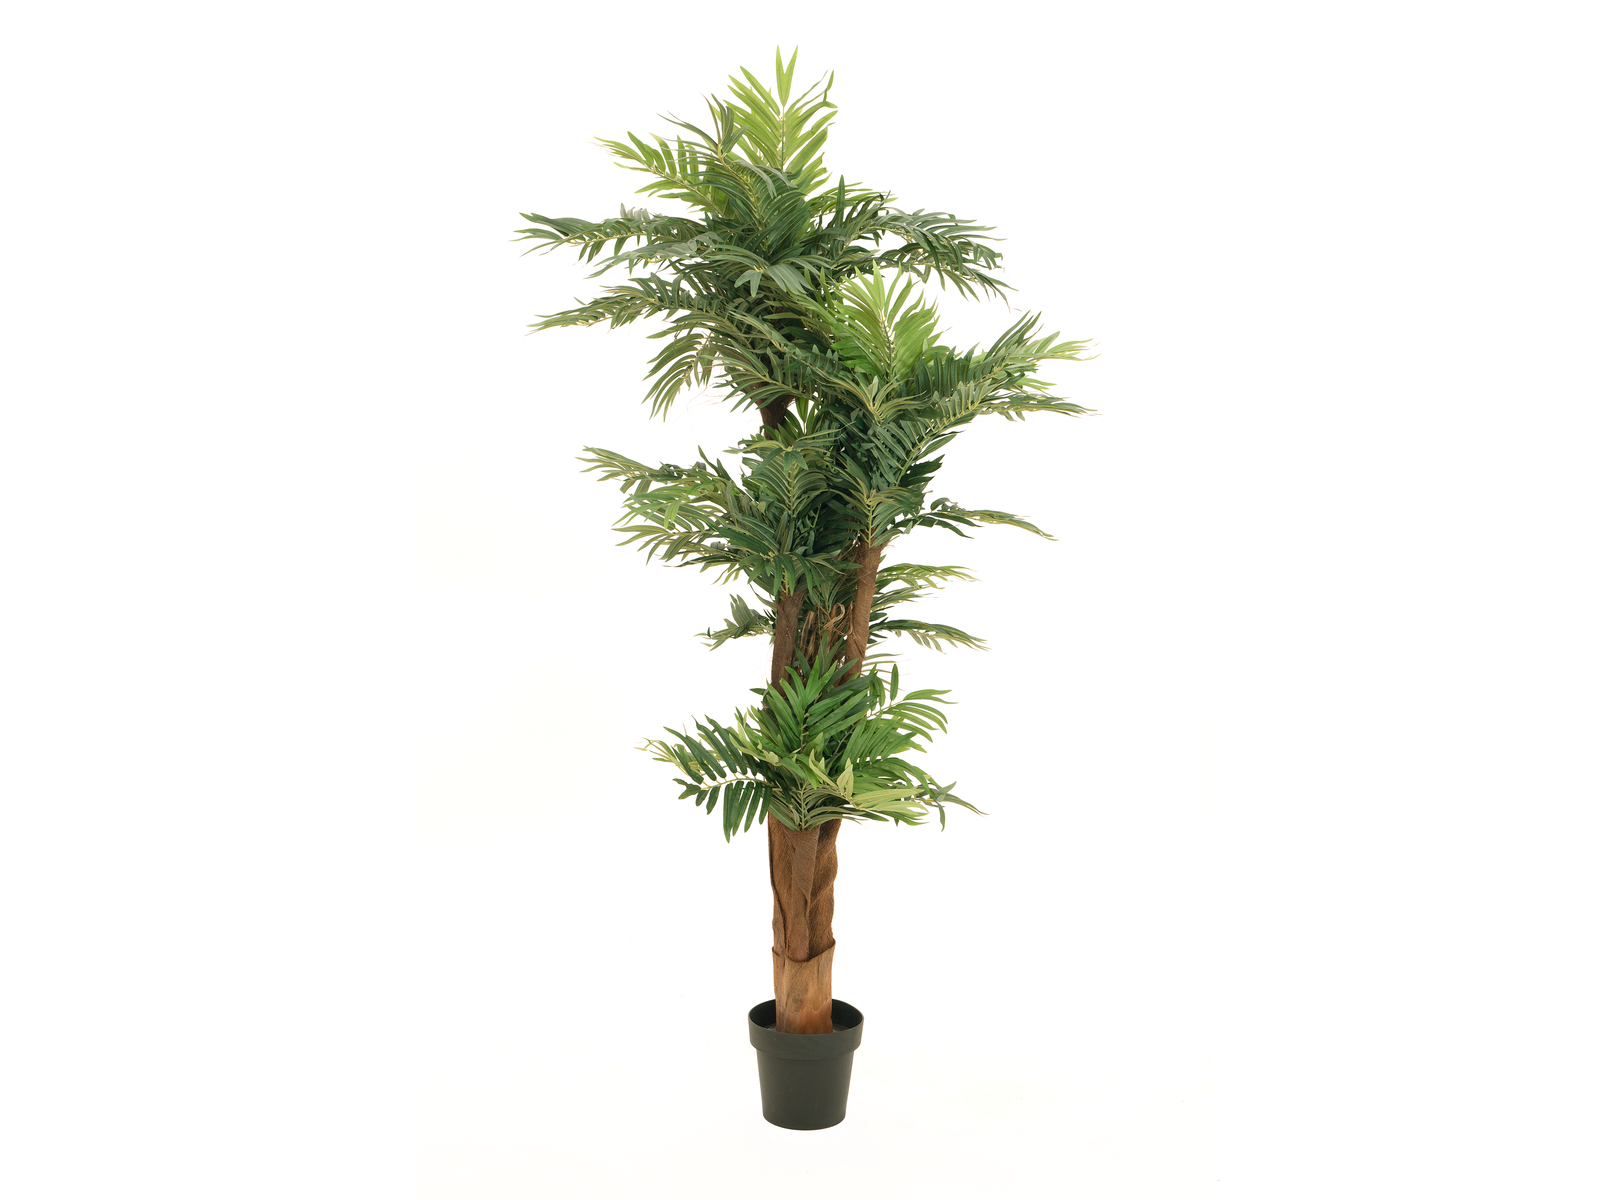 EUROPALMS la palma Areca, piante artificiali, 170cm